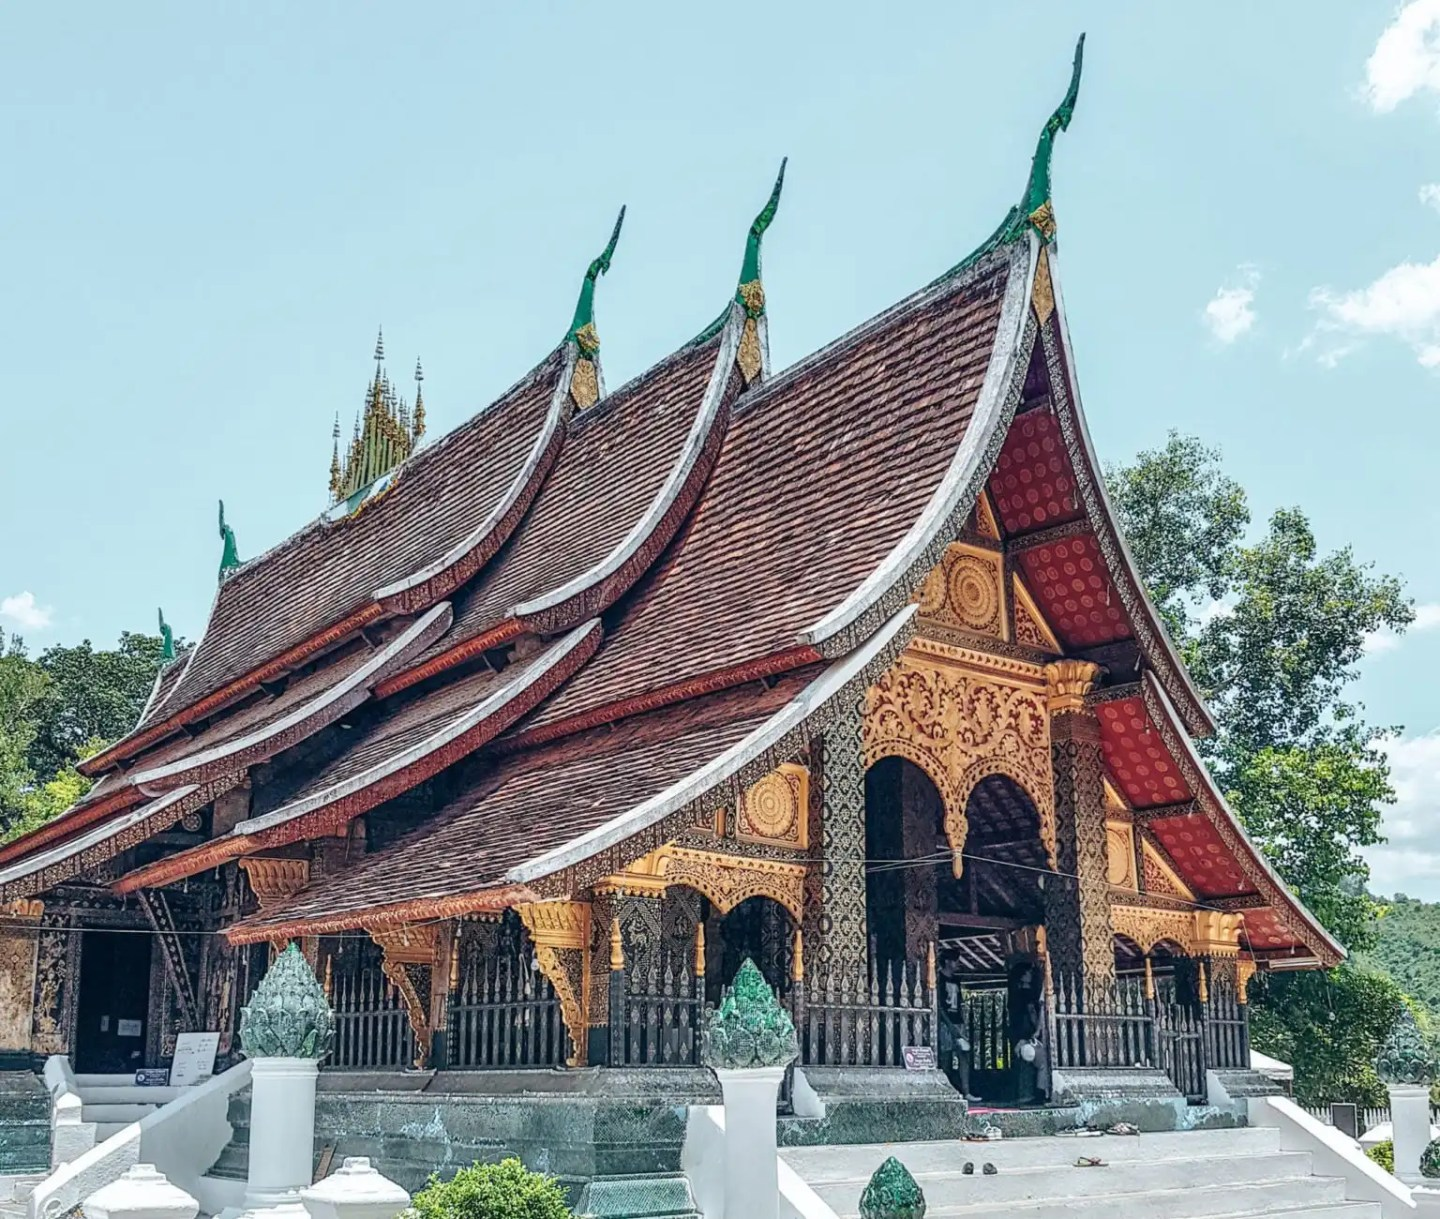 The stunning temple at Xieng Thong, Luang Prabang Laos